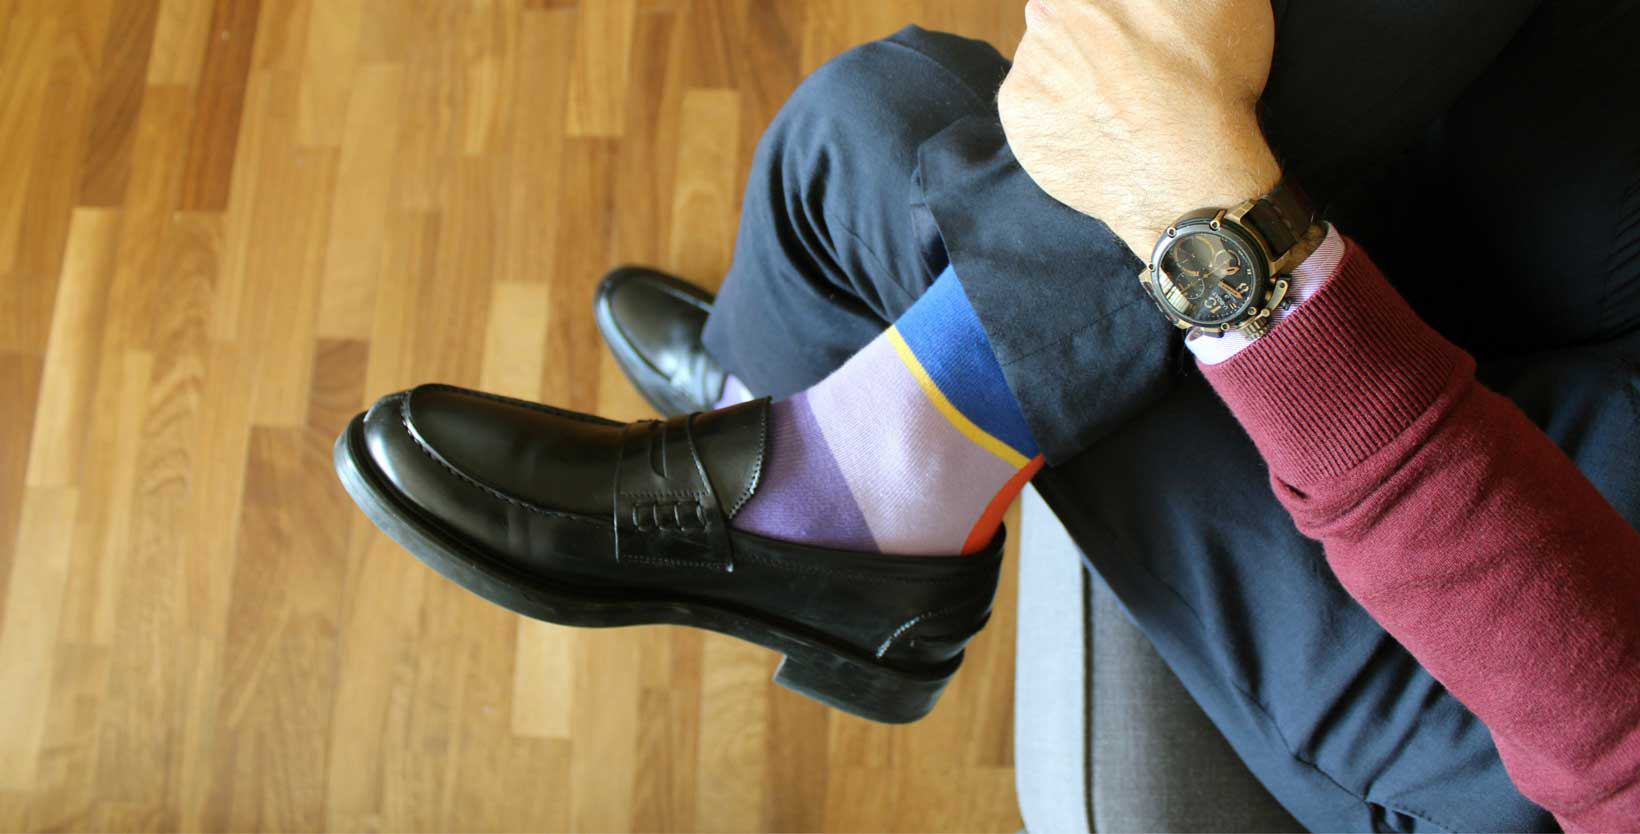 Pairing suit accessories like watch, socks, and shoes to outfit